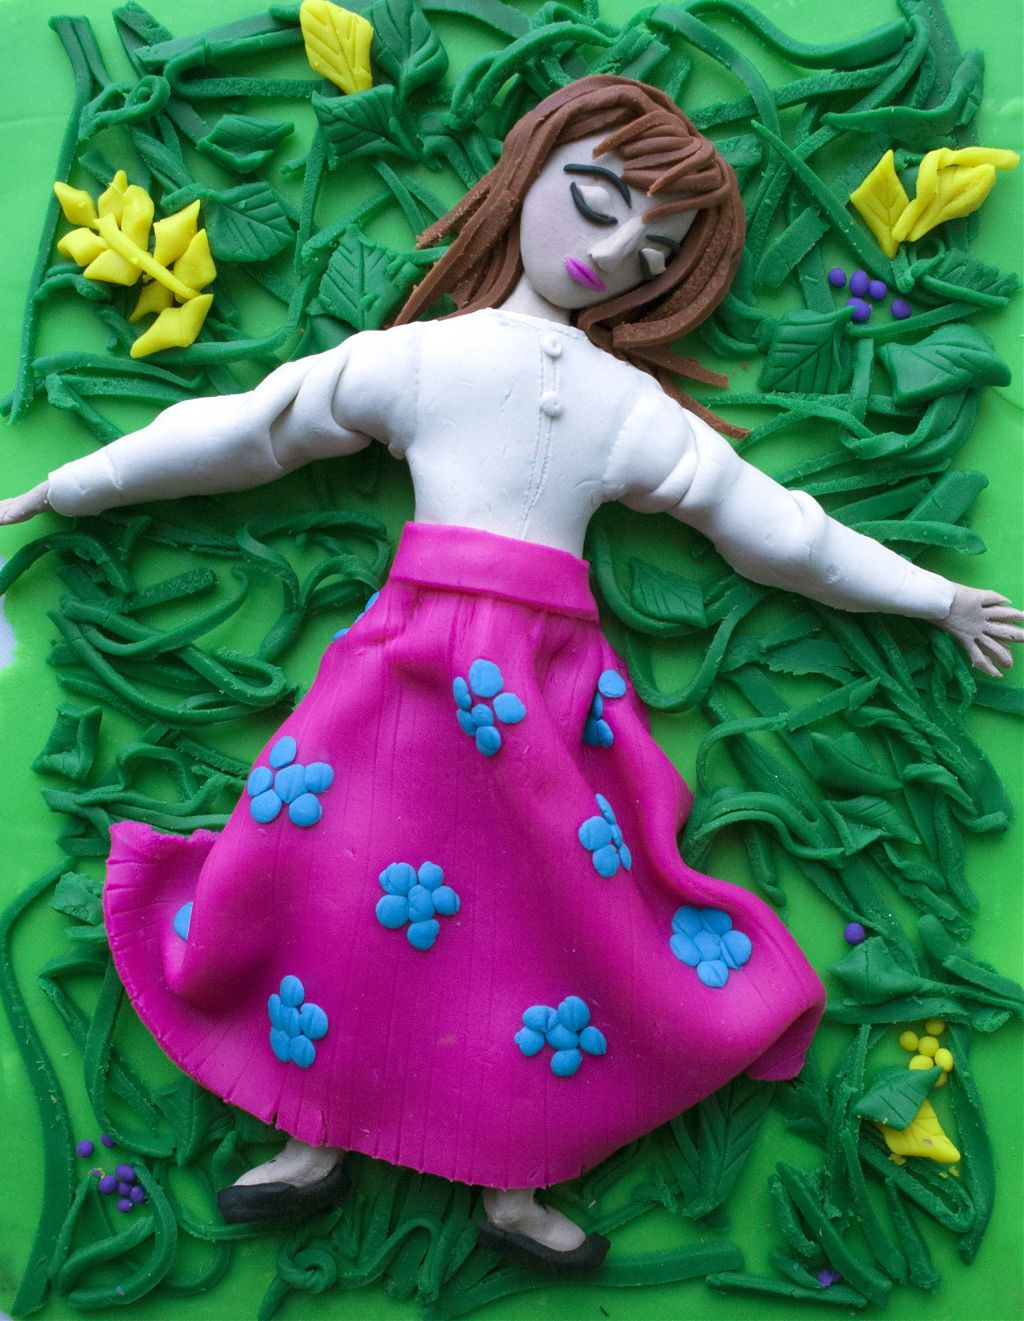 Sleeping Beauty play doh